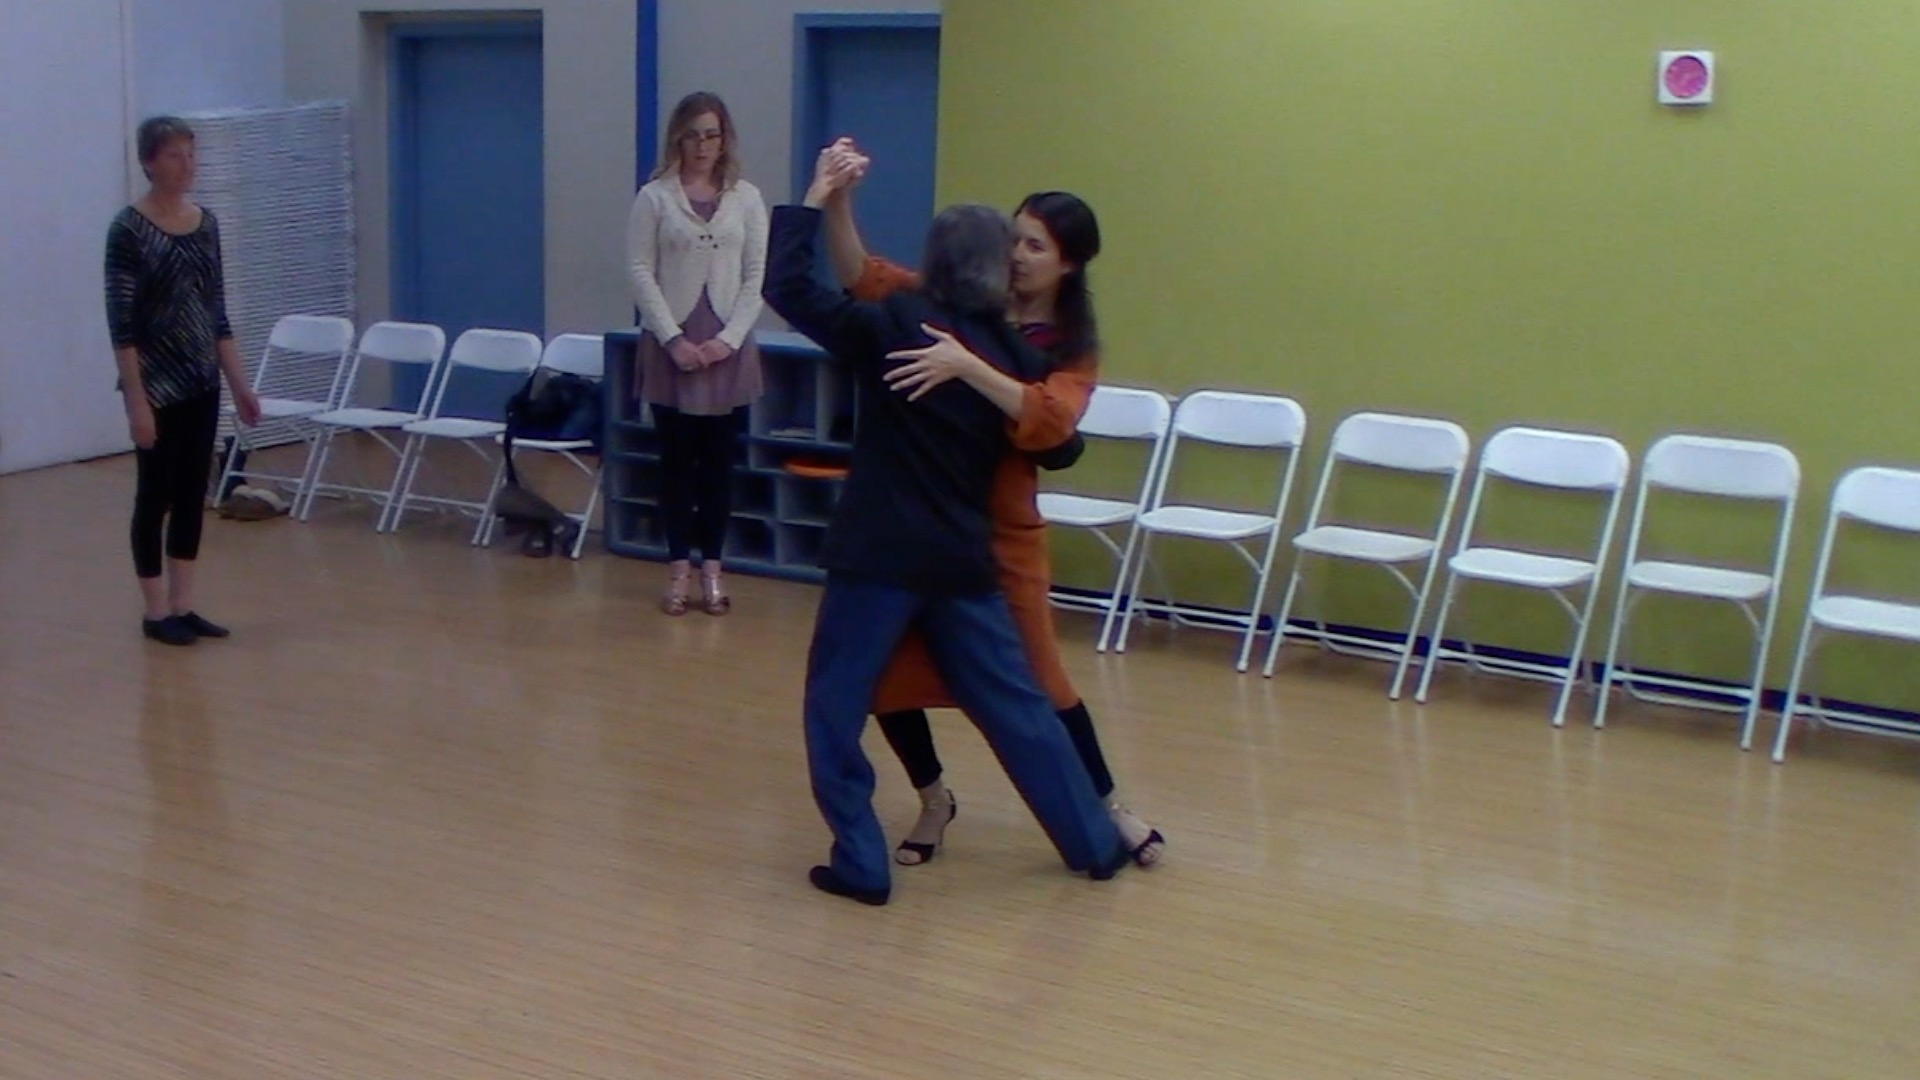 Argentine Tango dancing with Mimi at our beginner class